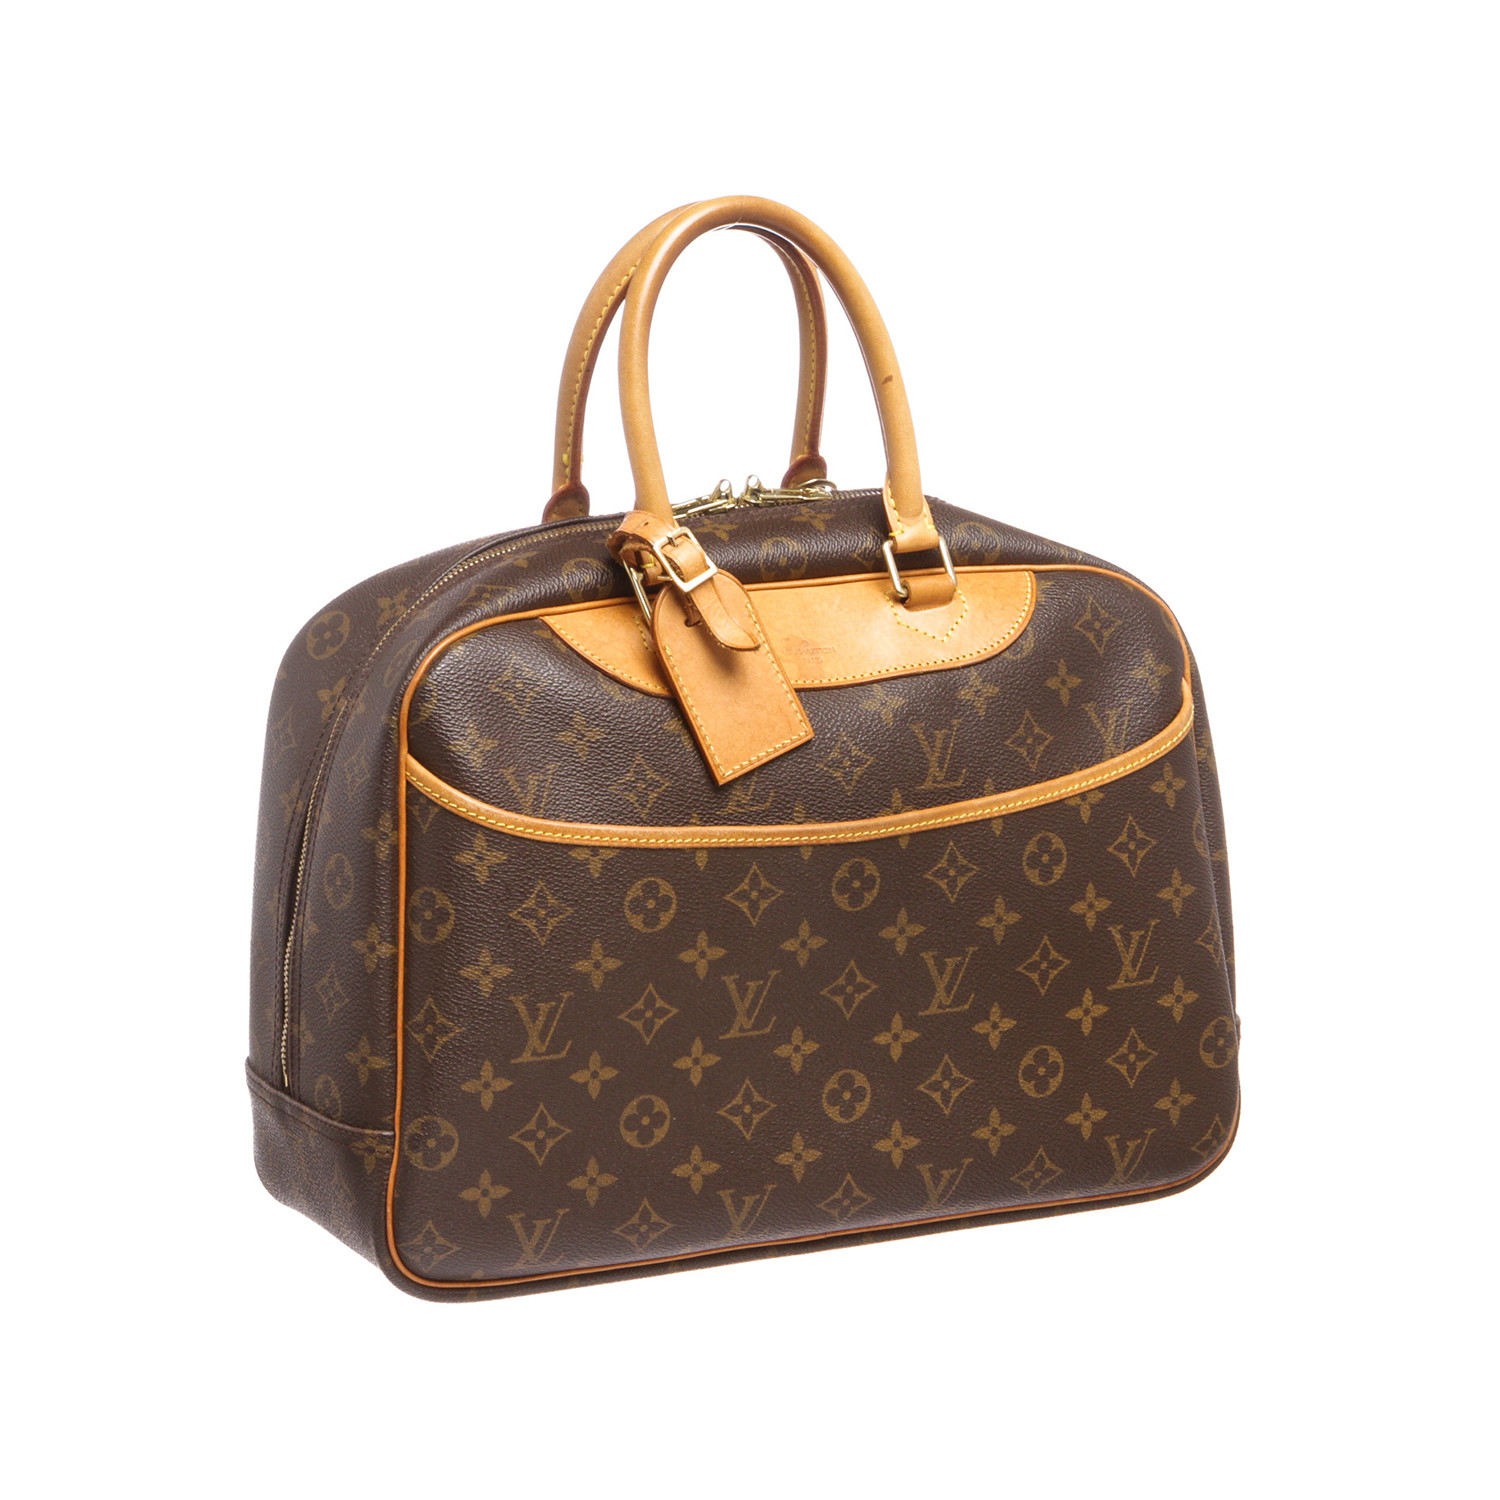 louis vuitton monogram deauville doctor bag mb0092 pre owned louis vuitton goyard. Black Bedroom Furniture Sets. Home Design Ideas